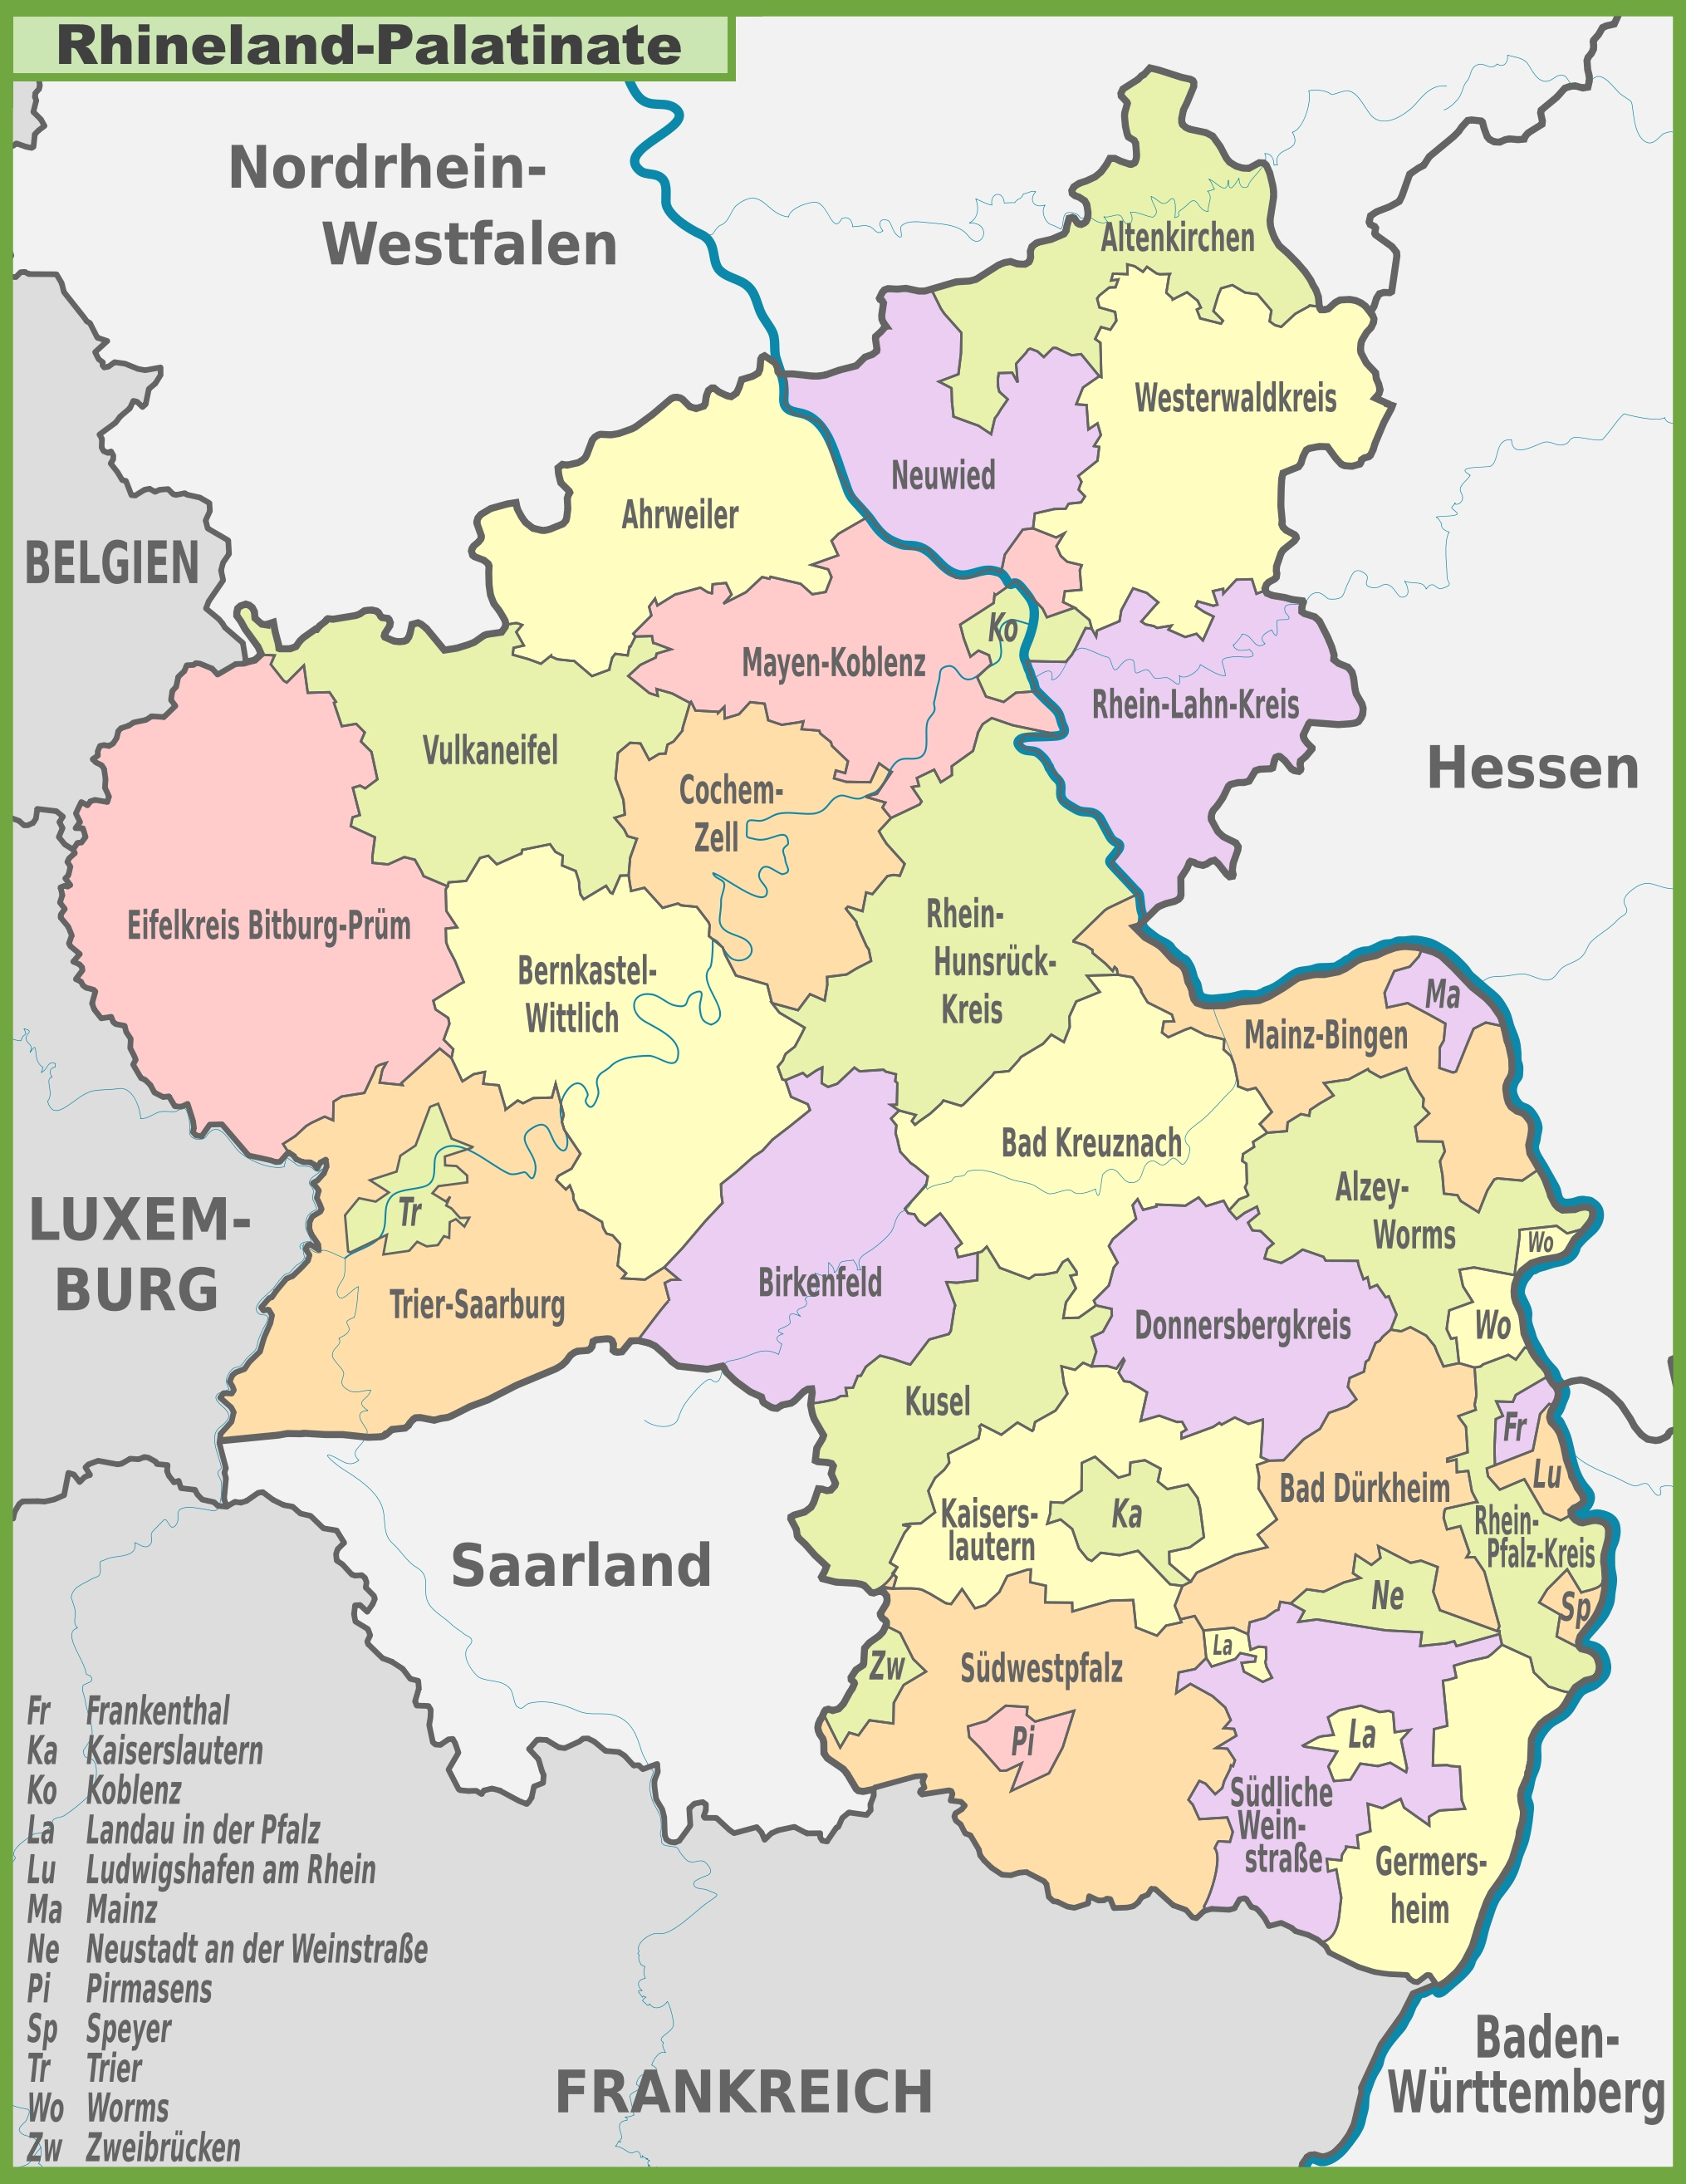 Administrative divisions map of RhinelandPalatinate